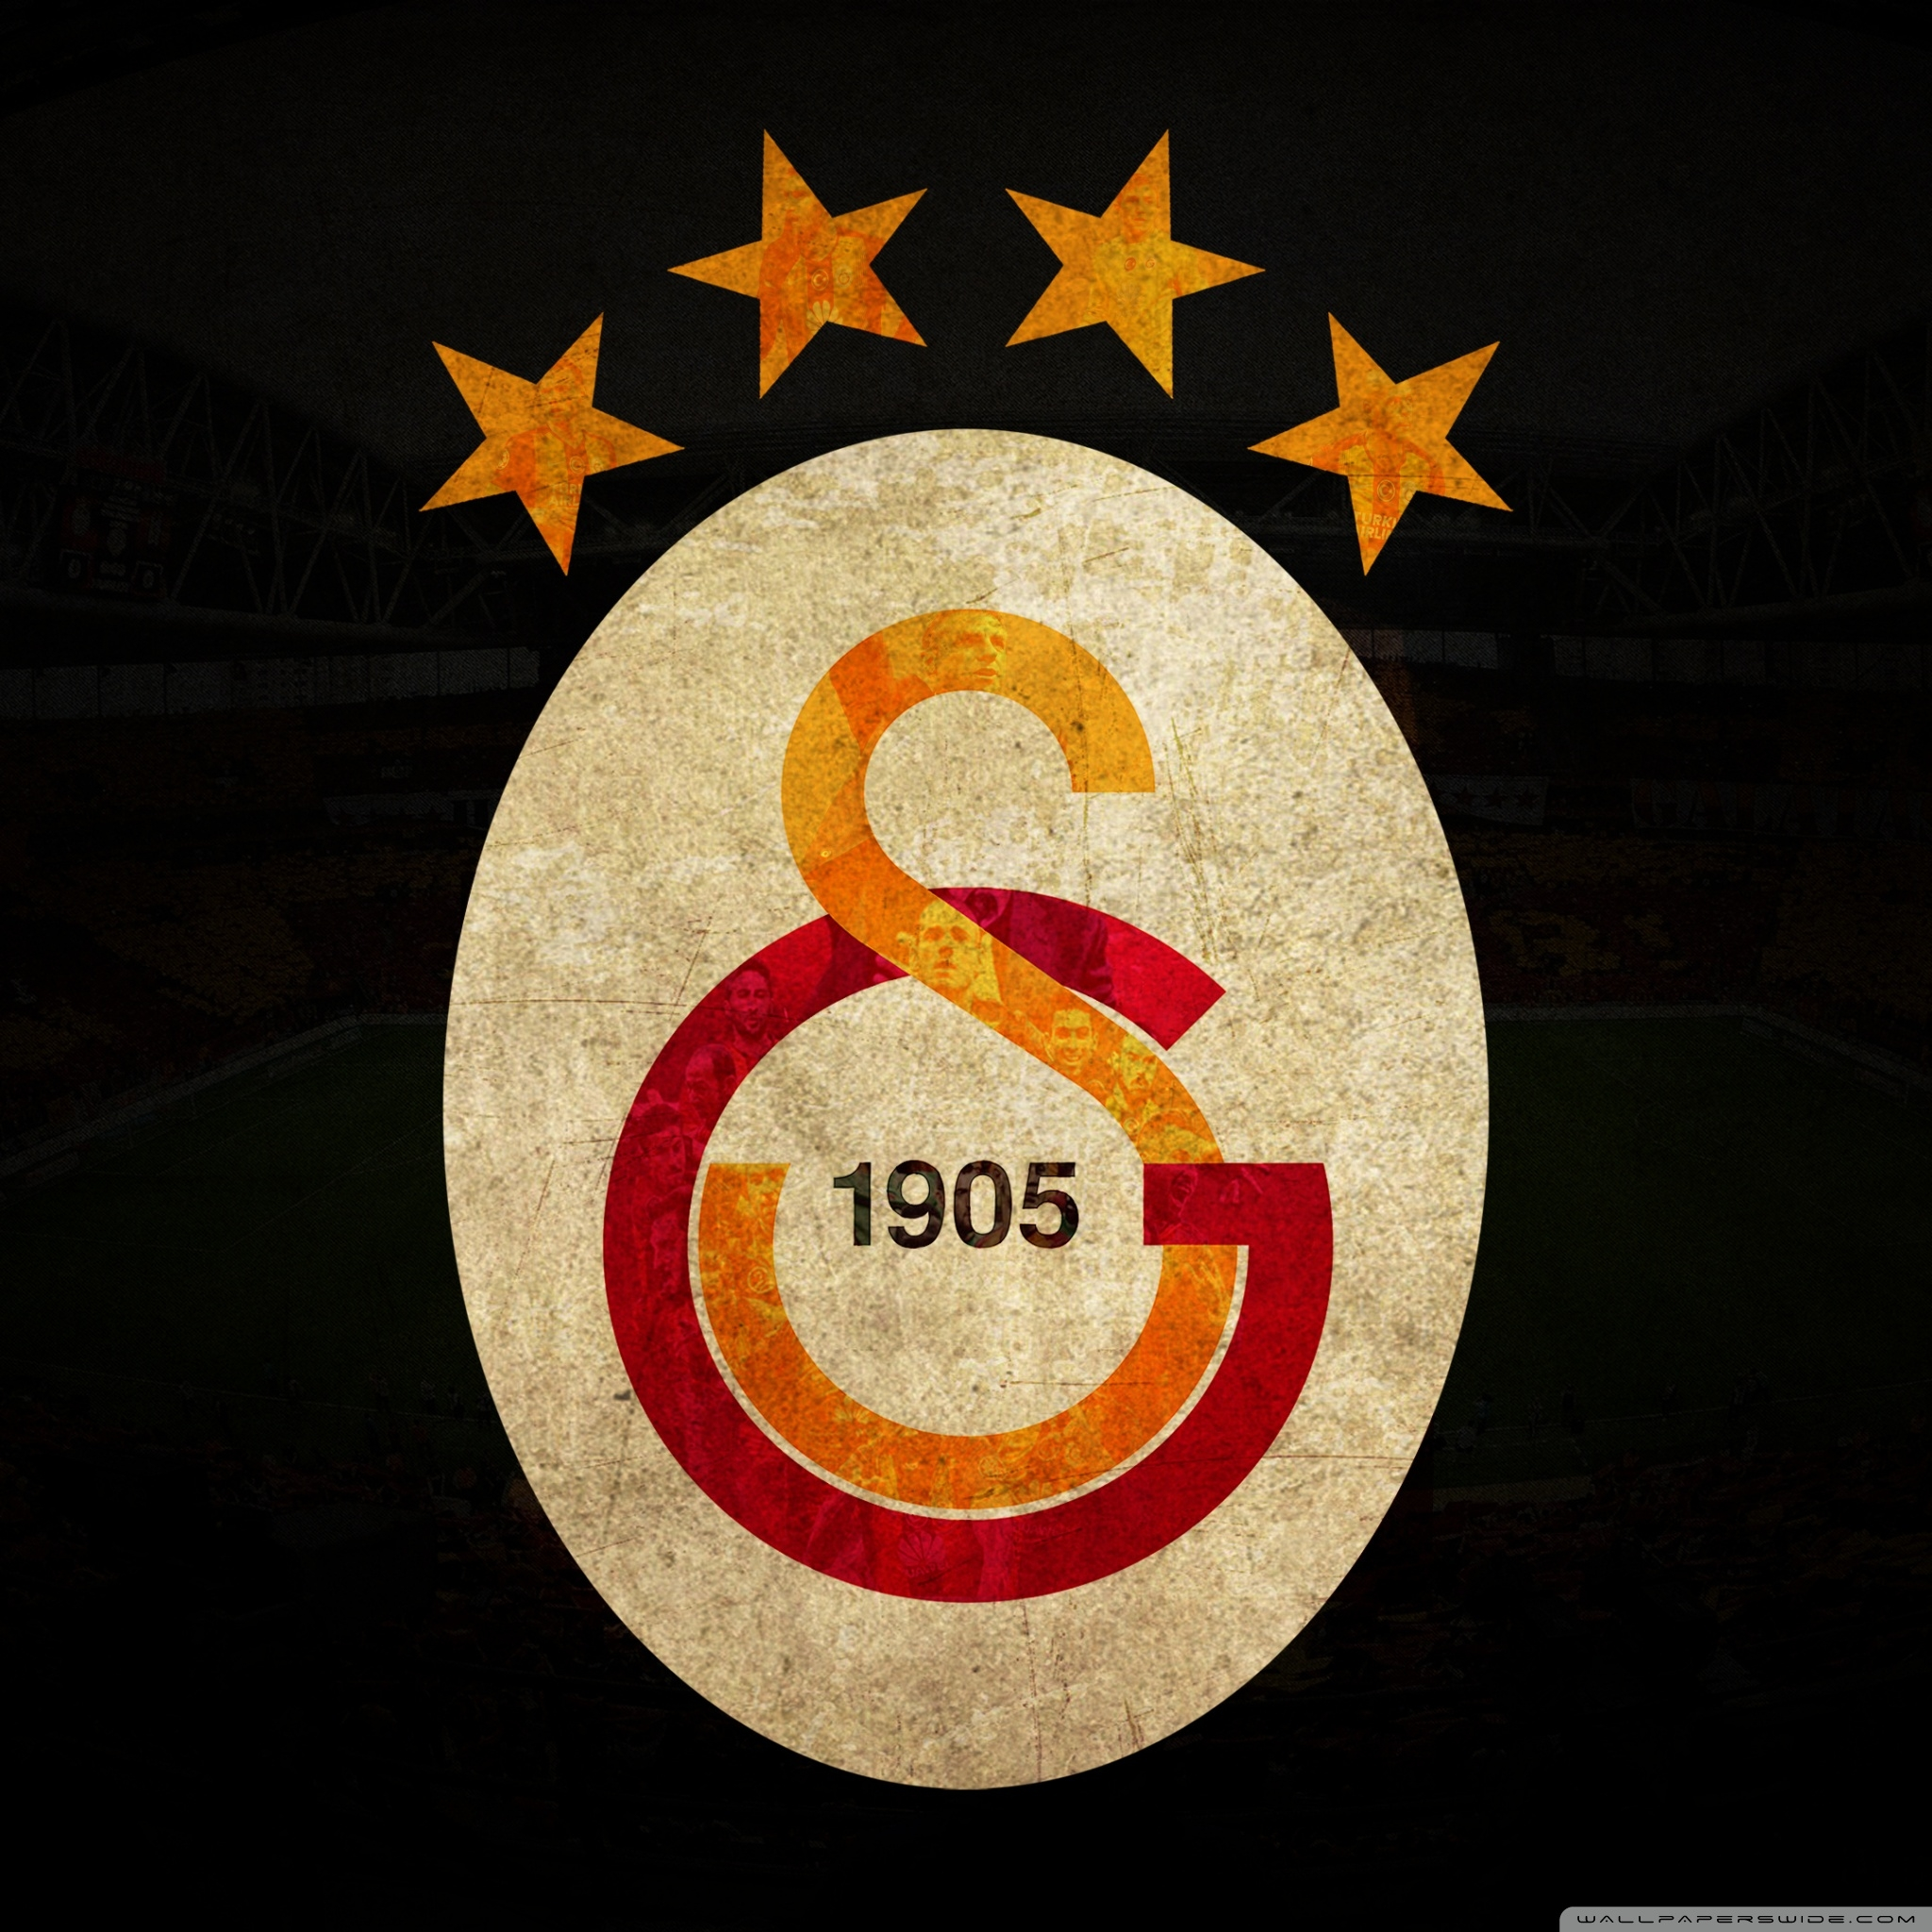 Unique Galatasaray Galaxy S Wallpaper Great Foofball b